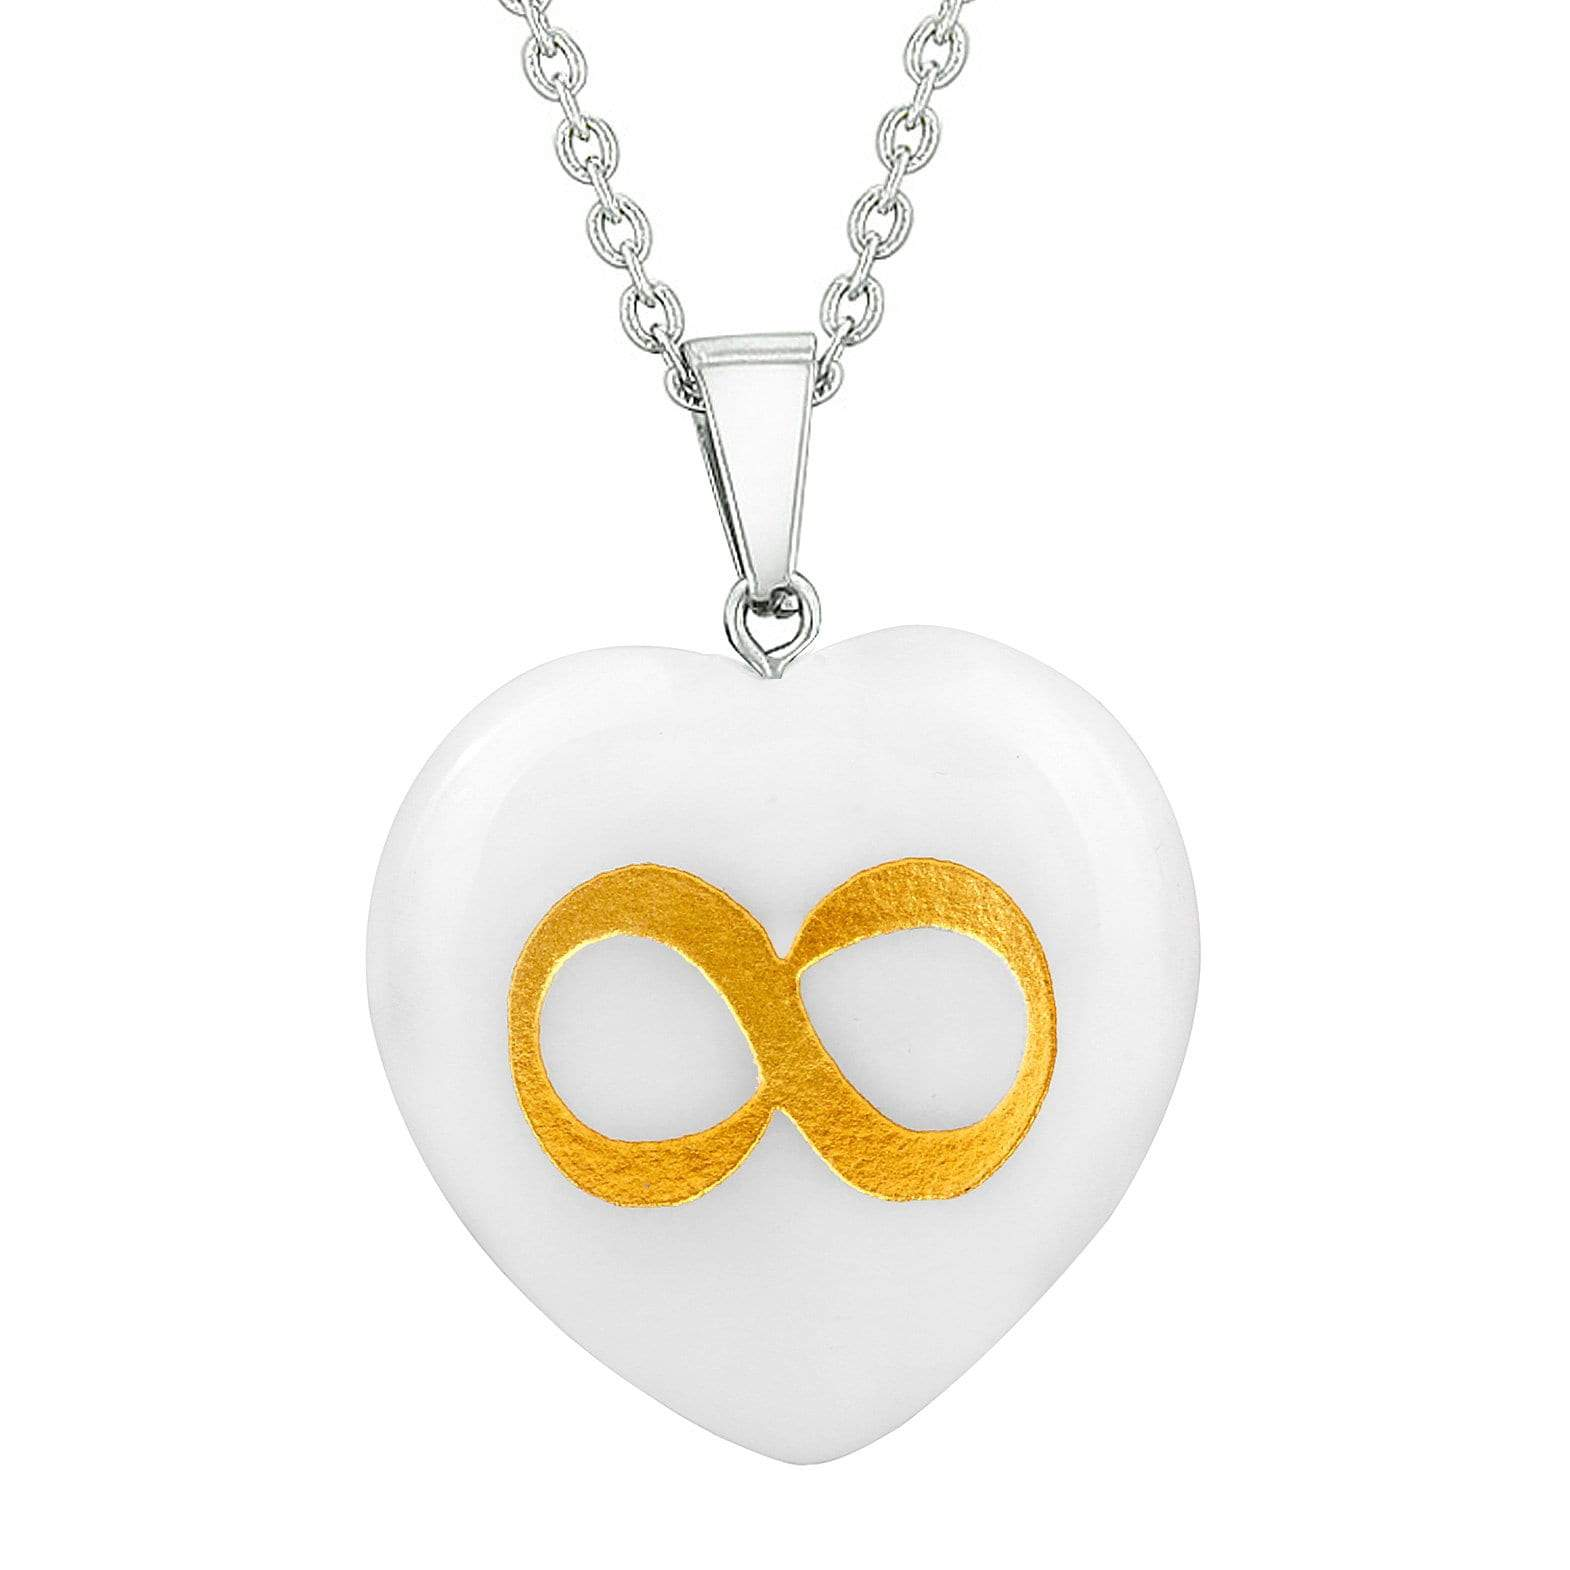 Amulet Infinity Magical Unity Powers Protect Energy Snowflake Quartz Puffy Heart Pendant Necklace